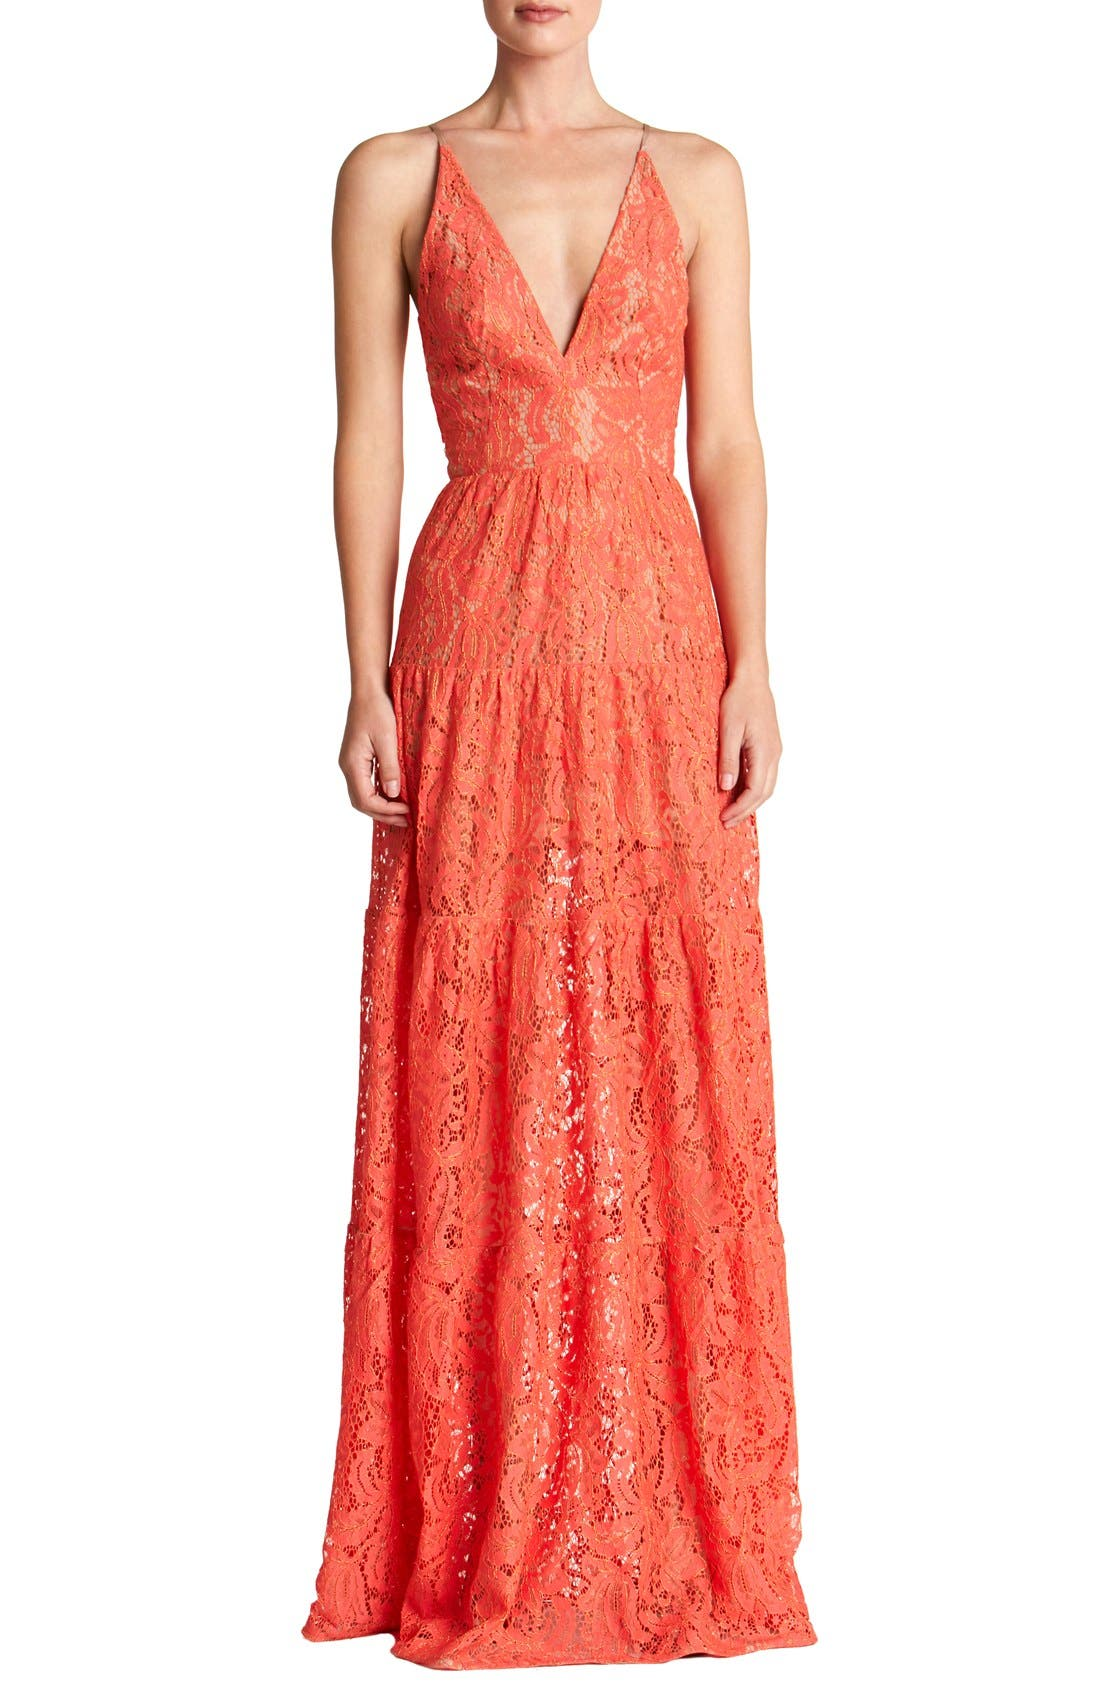 DRESS THE POPULATION Melina Lace Fit & Flare